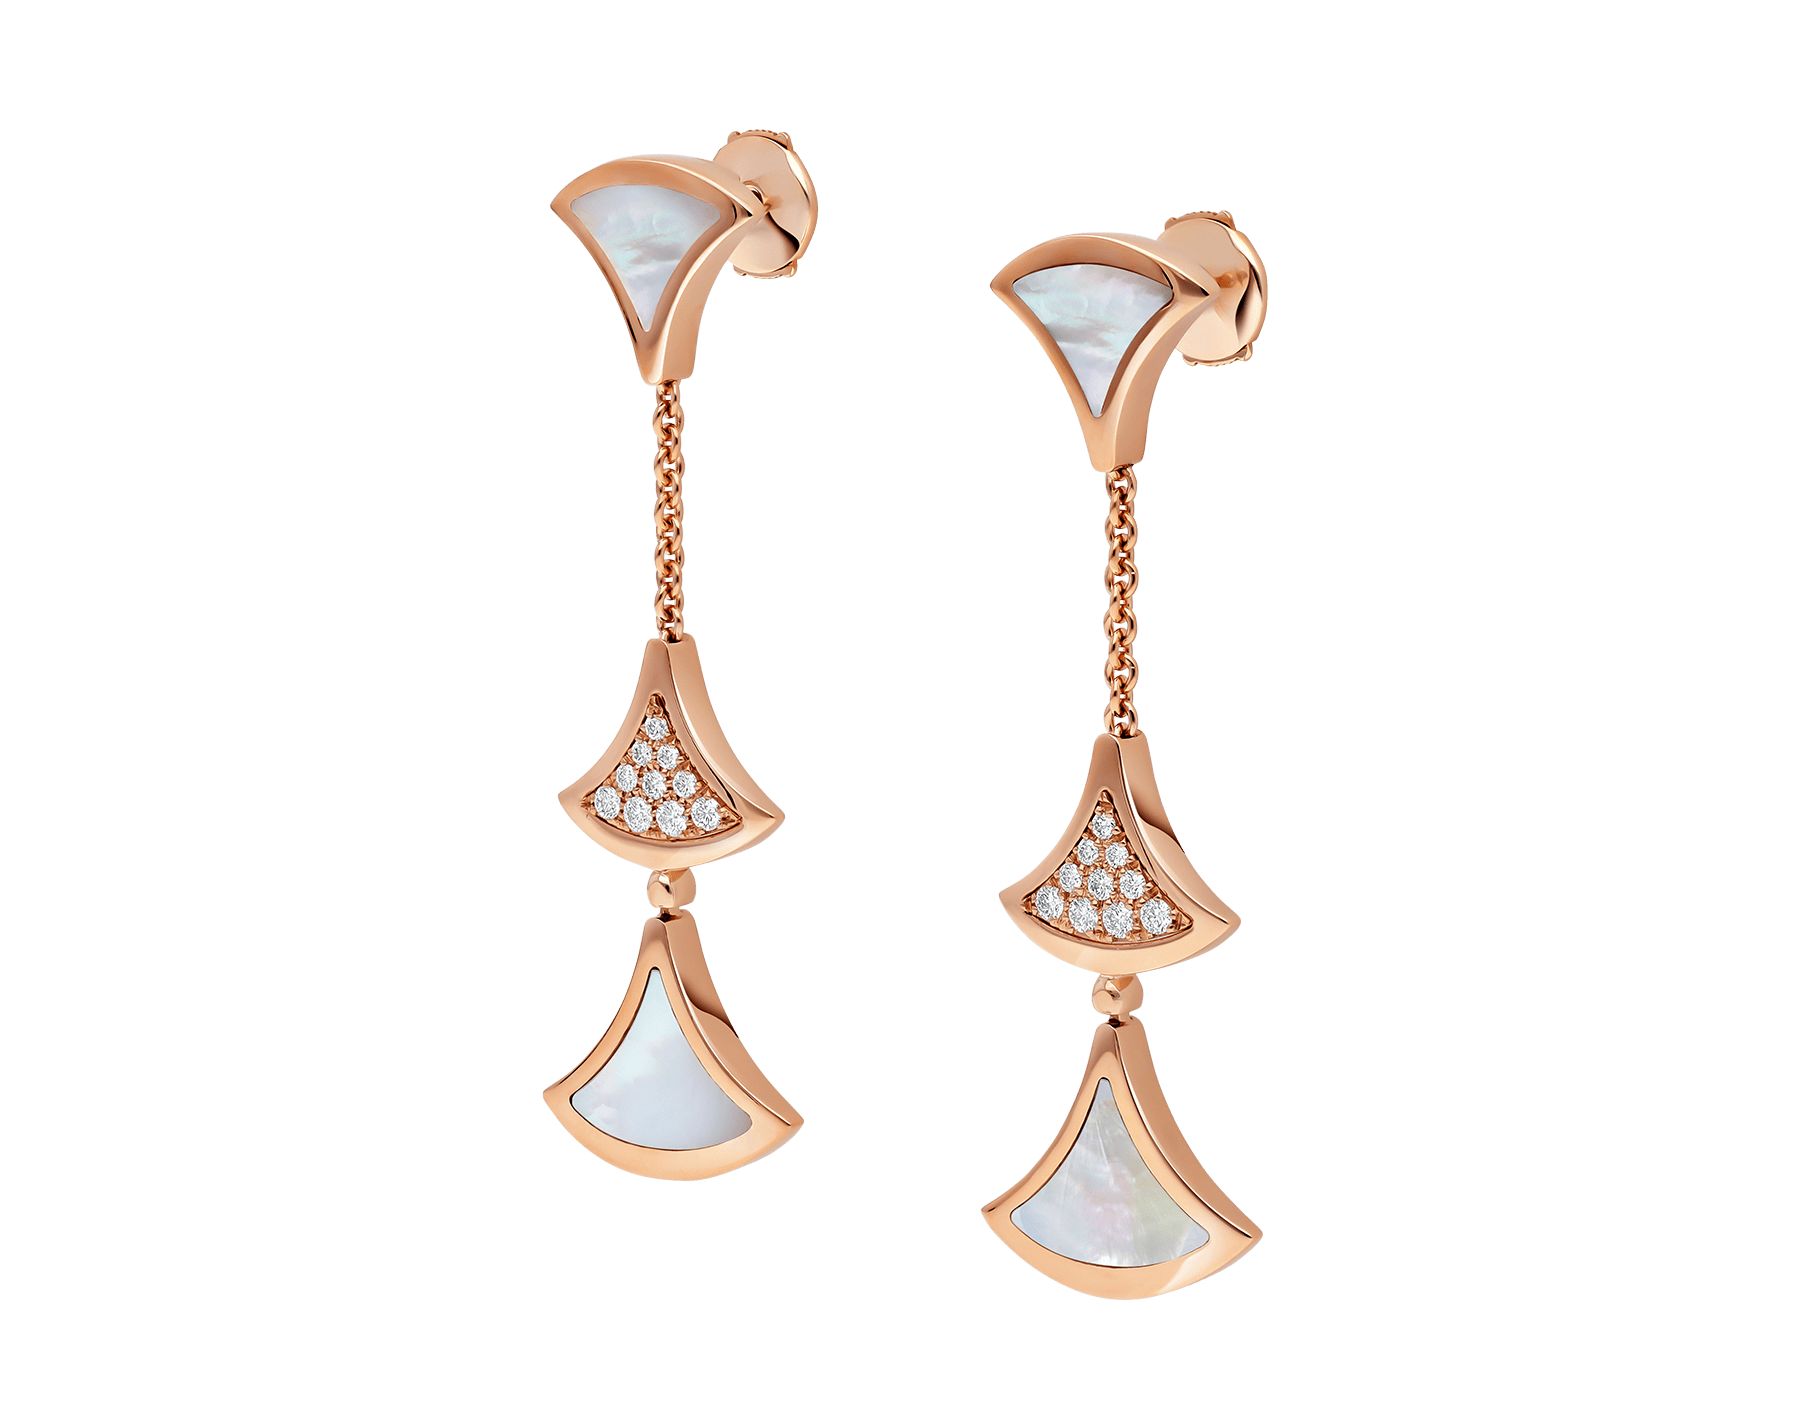 DIVAS' DREAM earrings in 18 kt rose gold, set with mother-of-pearl elements and pavé diamonds. 352603 image 2